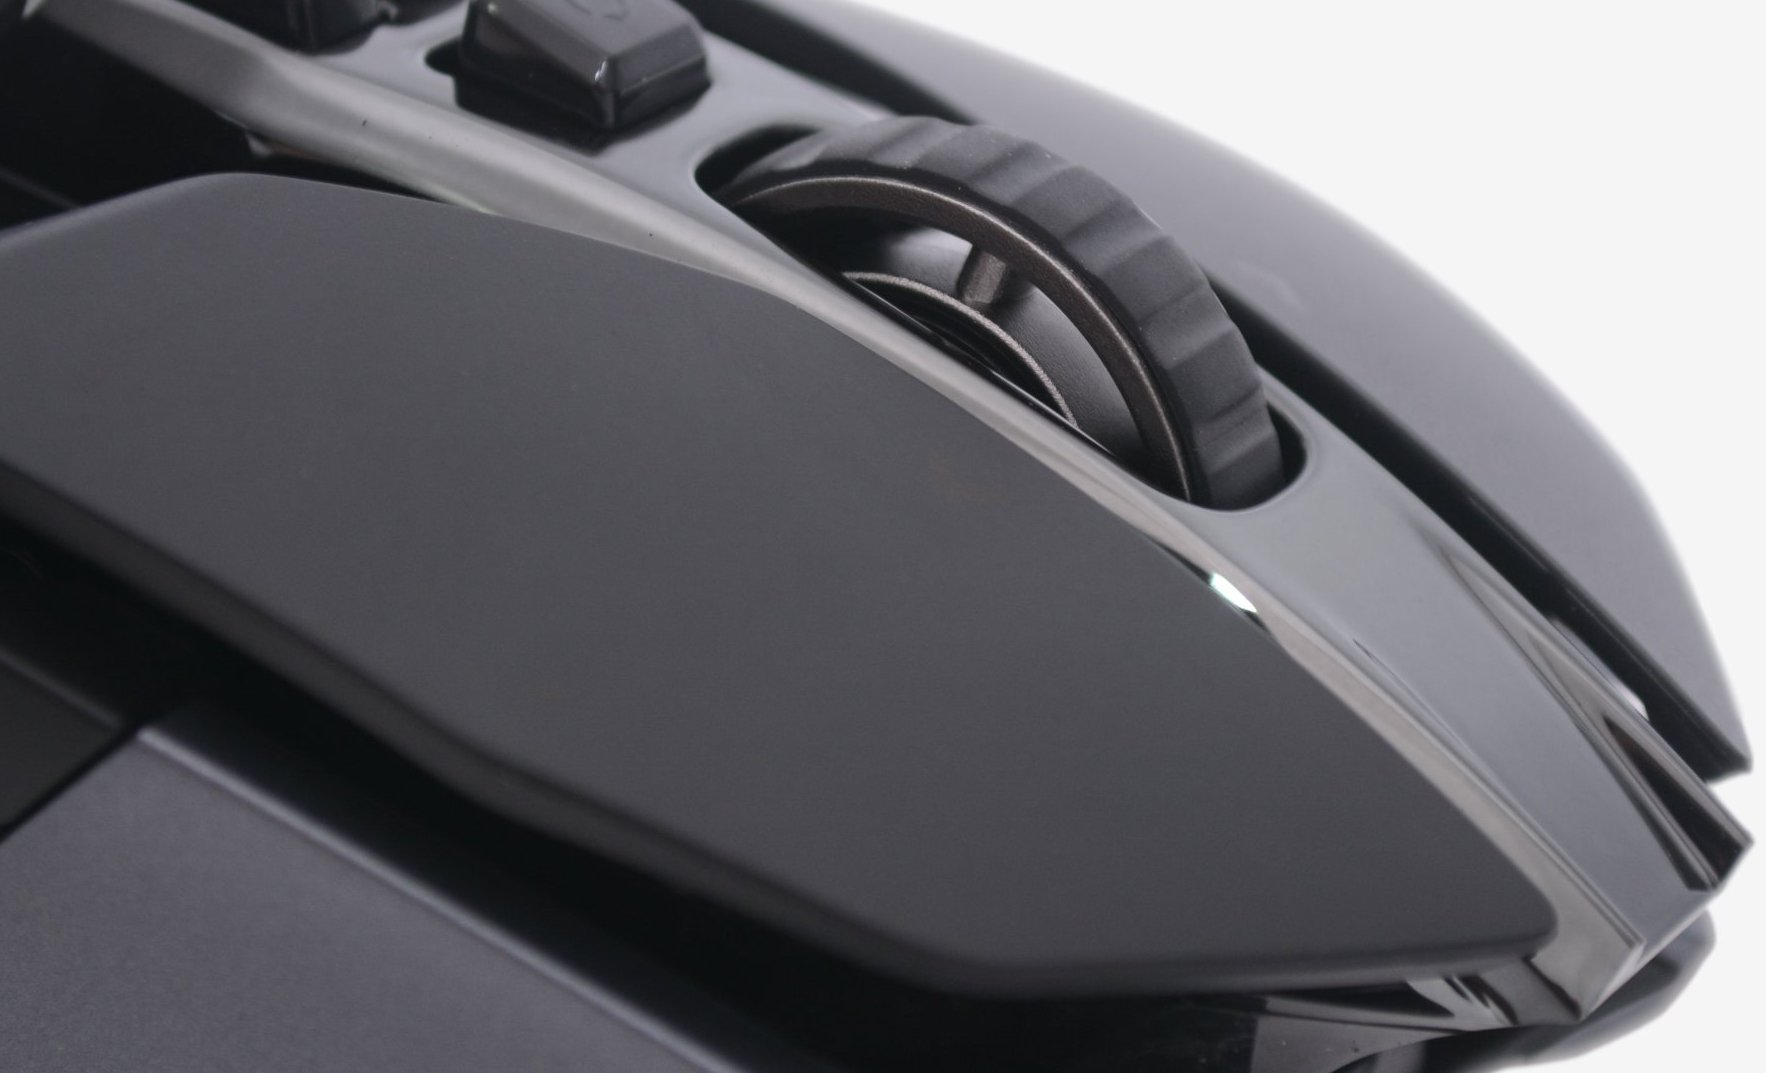 9a860d81a2c A nifty feature is the dual-mode hyper-fast scroll wheel with on-the-fly  DPS adjustments. This is an updated version of Logitech's exclusive  dual-mode ...